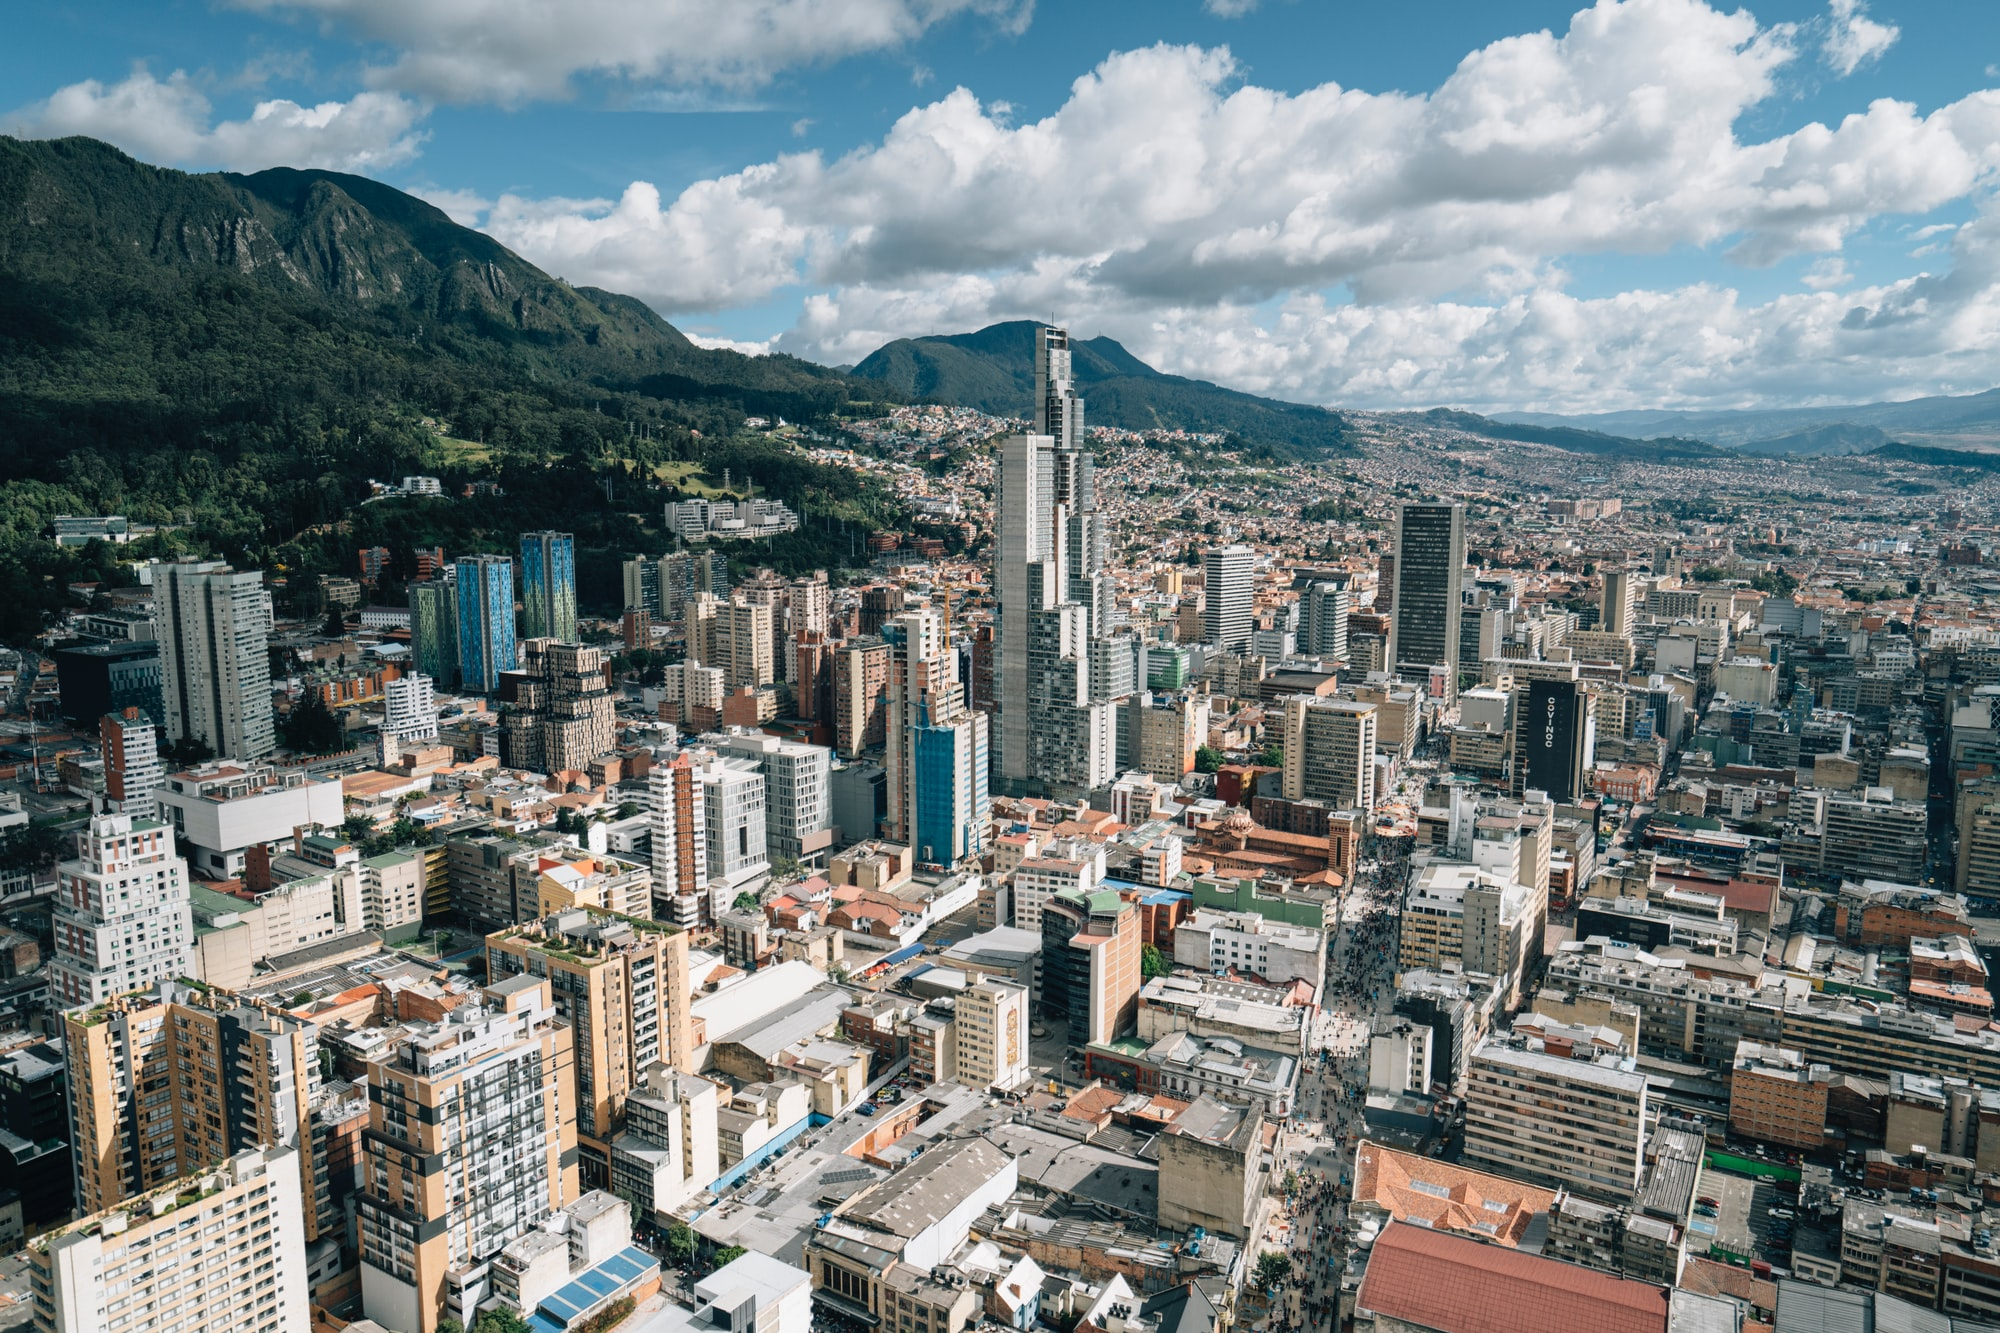 City of urban Bogota with high rise buildings, Colombia